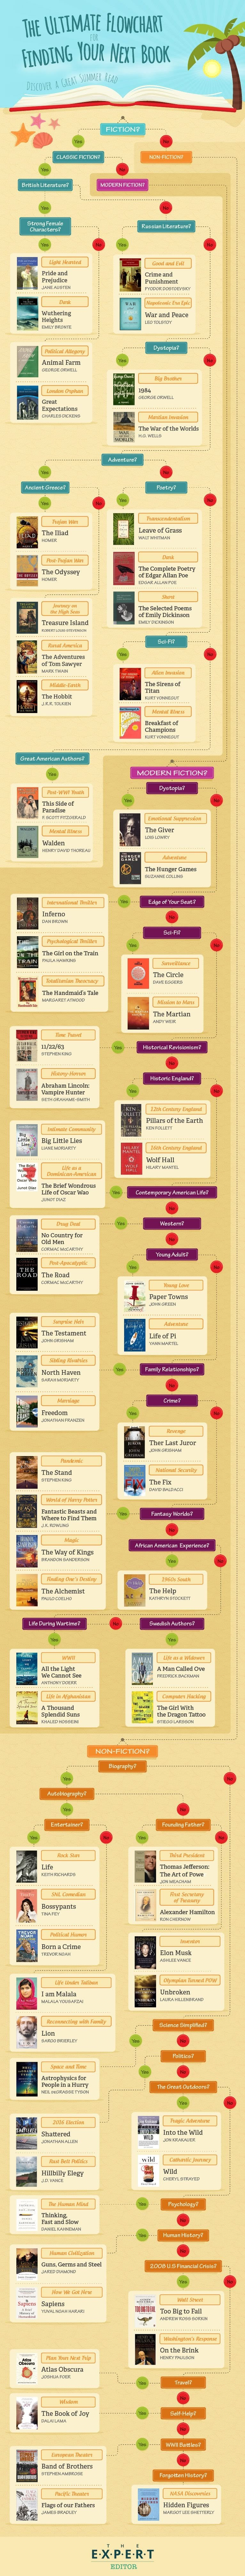 The Ultimate Flowchart for Finding Your Next Book